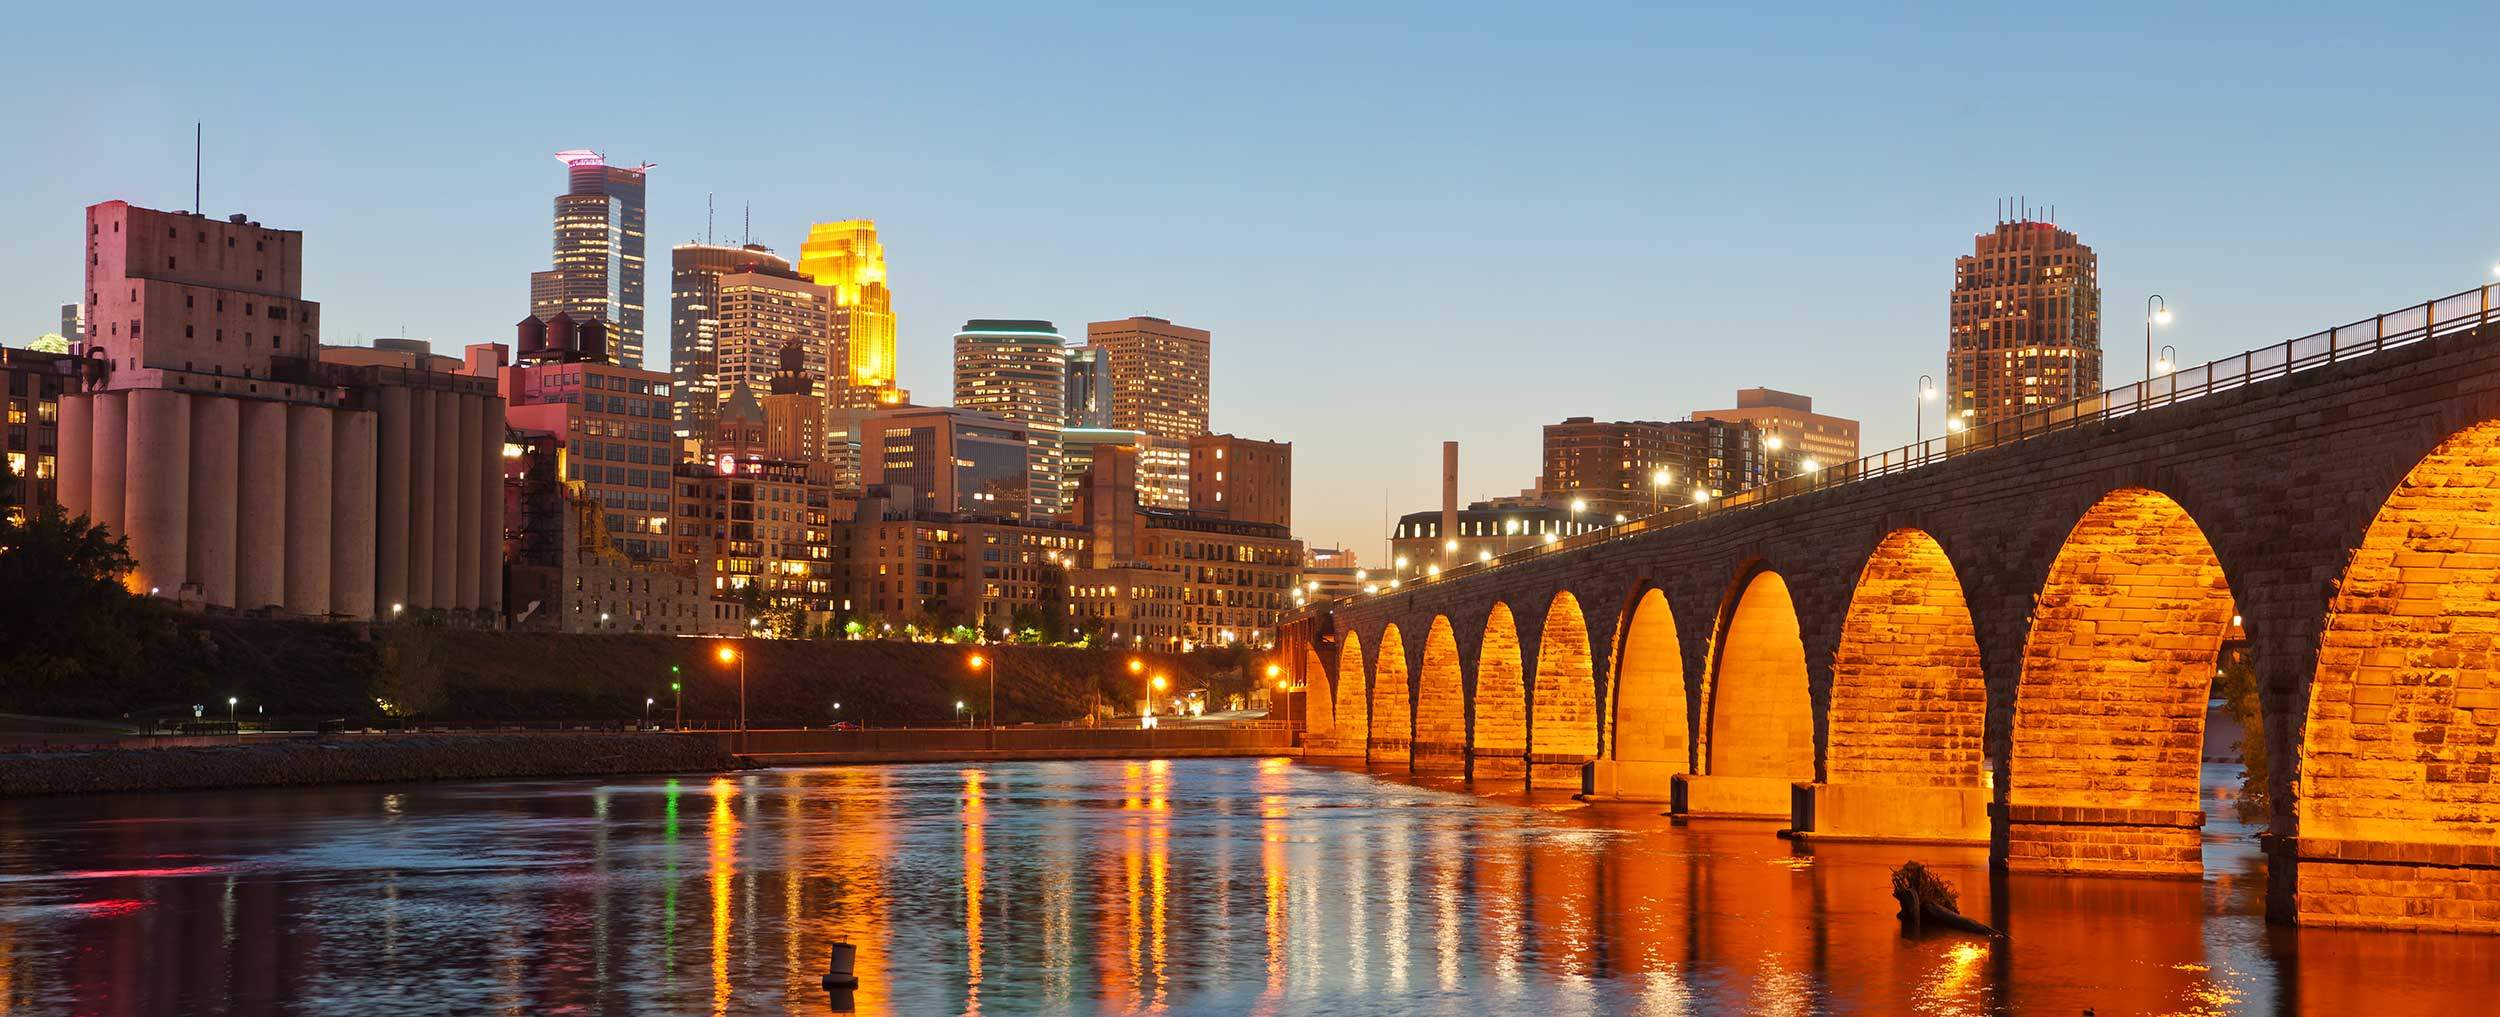 Minneapolis Bridge